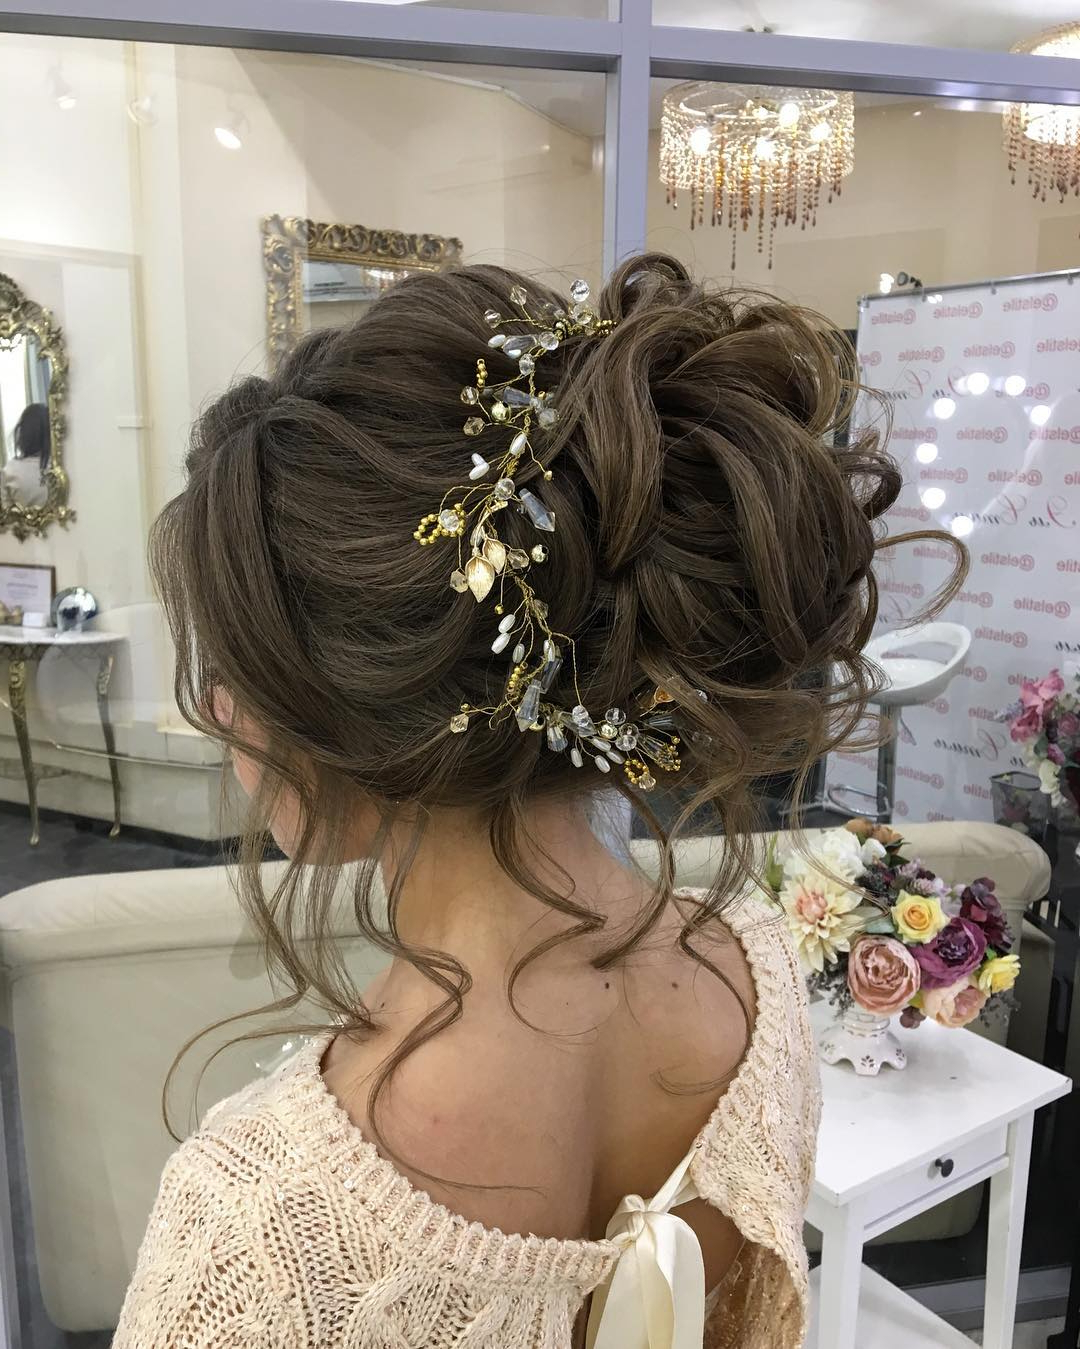 Messy Hair Updo Hairstyles (View 10 of 20)